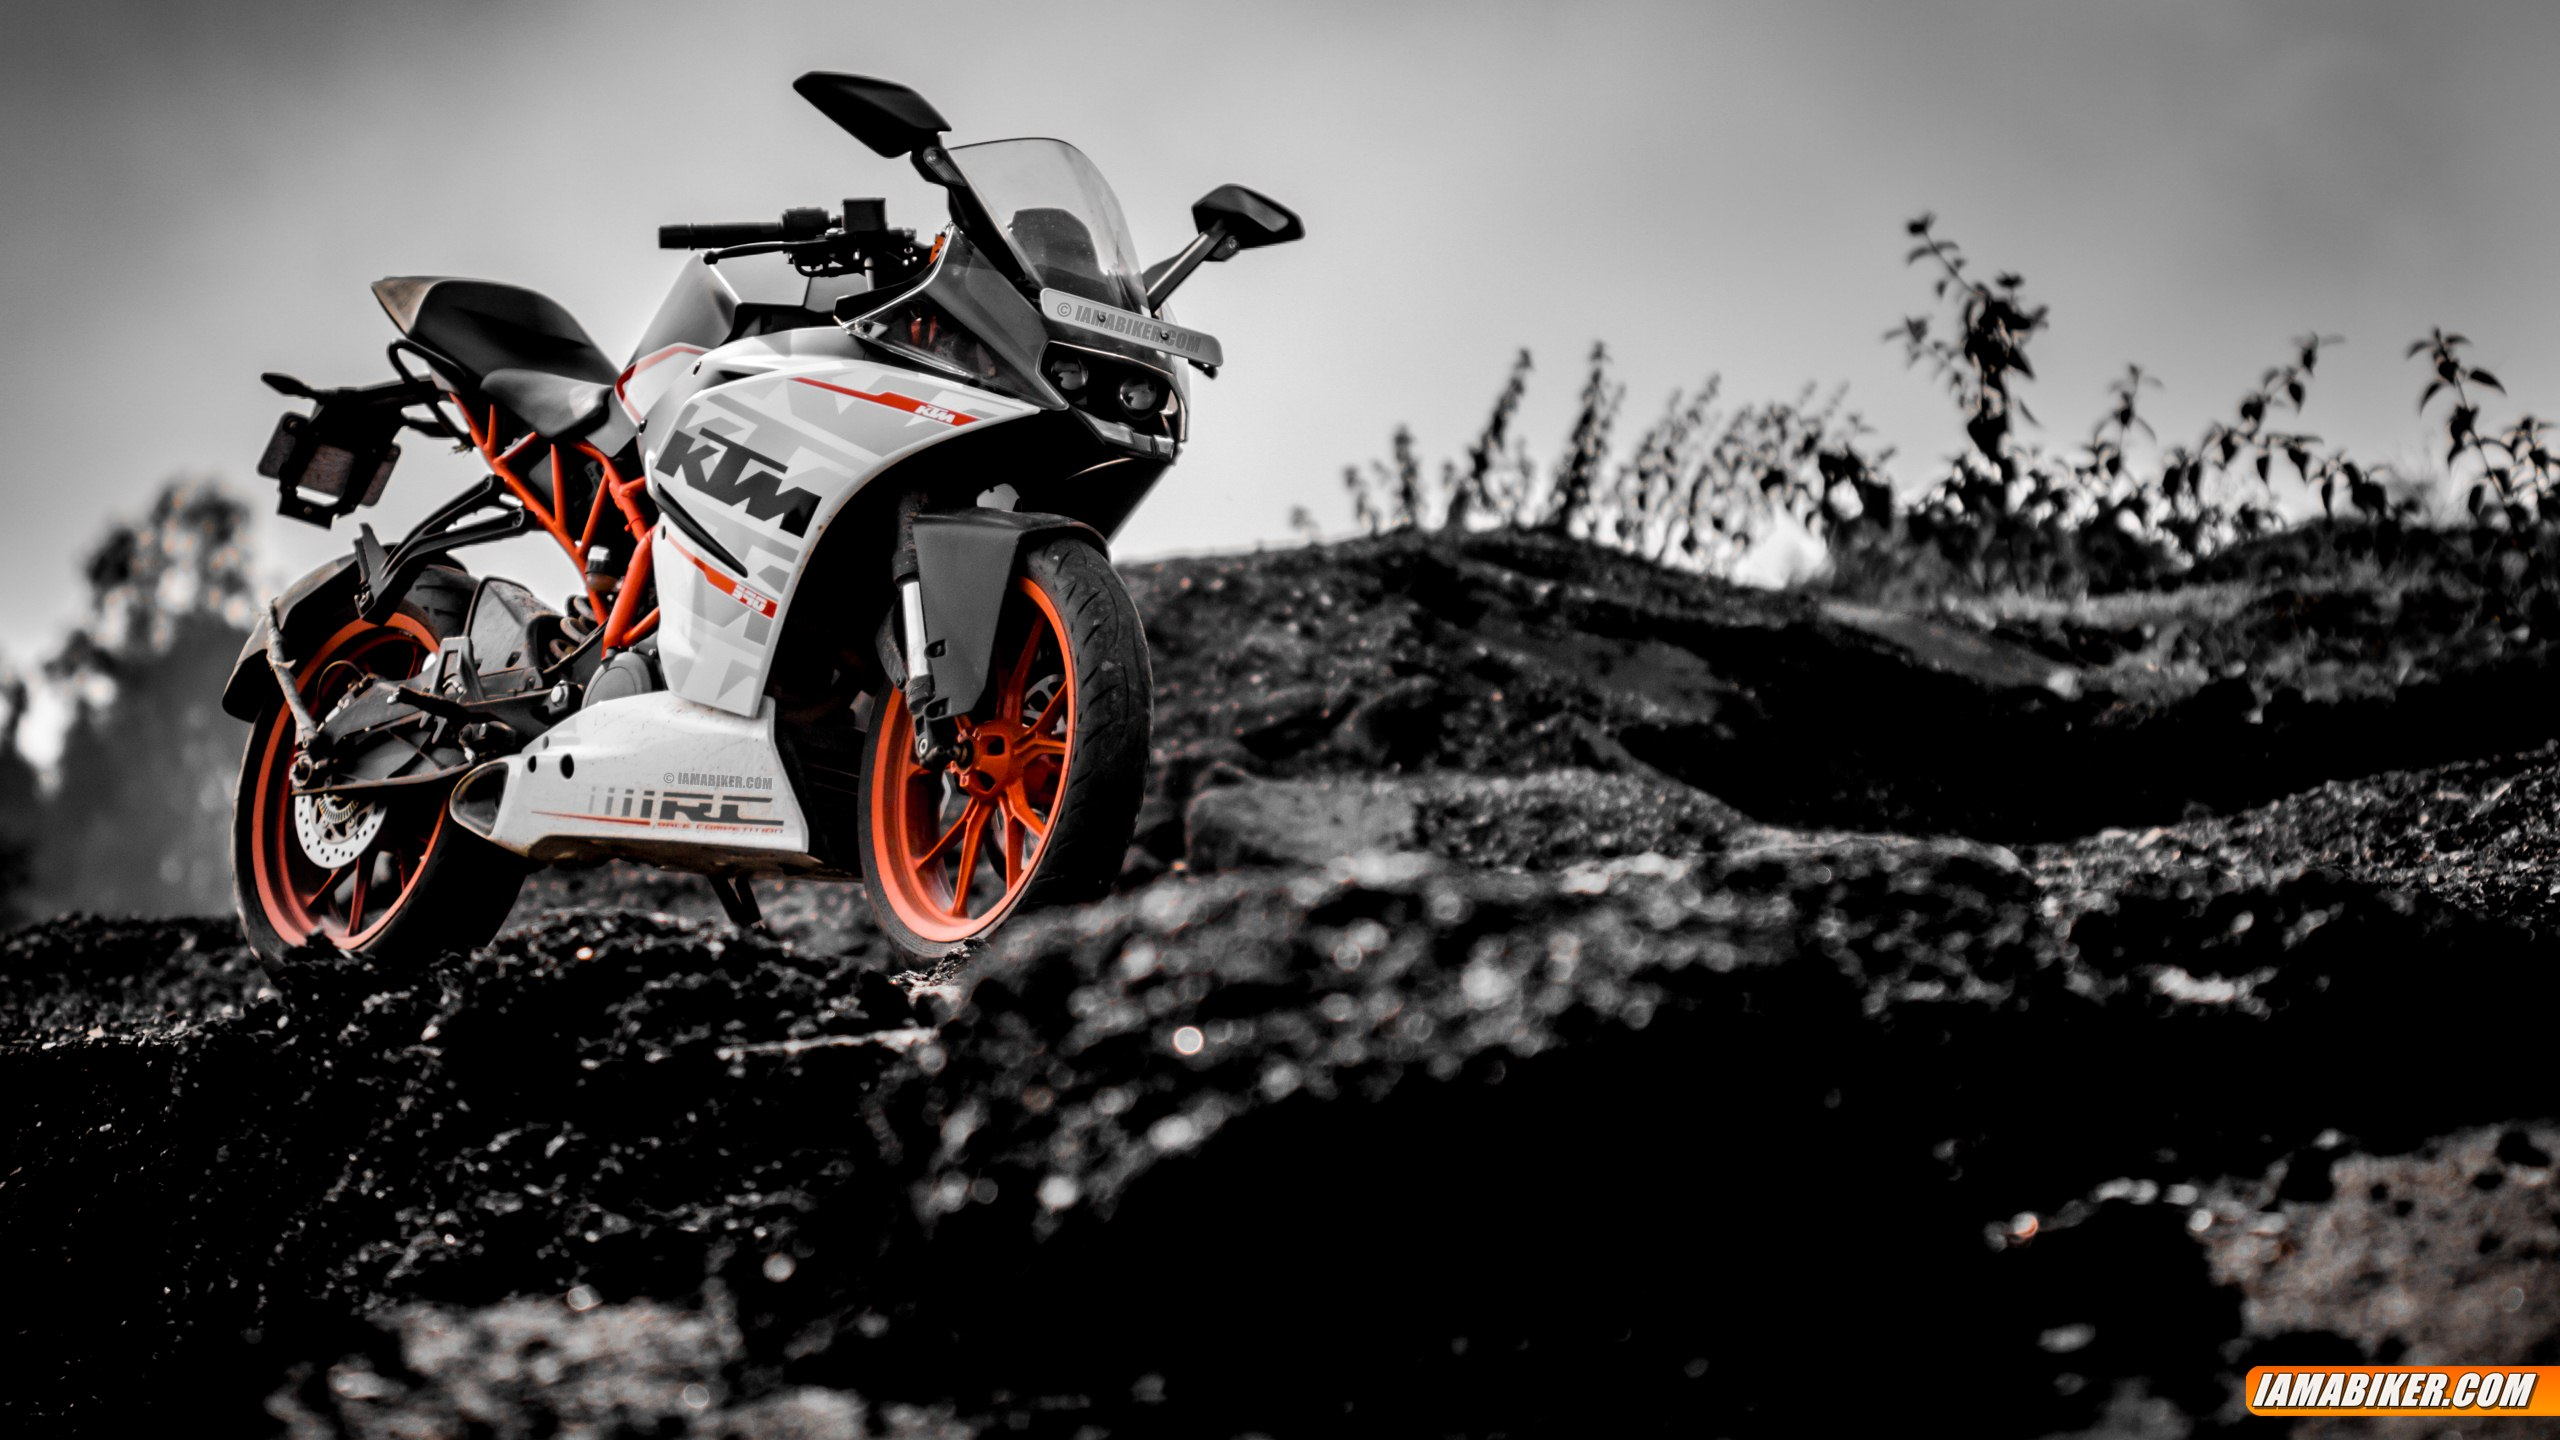 Ktm Rc 390 Hd Wallpapers Iamabiker Everything Motorcycle